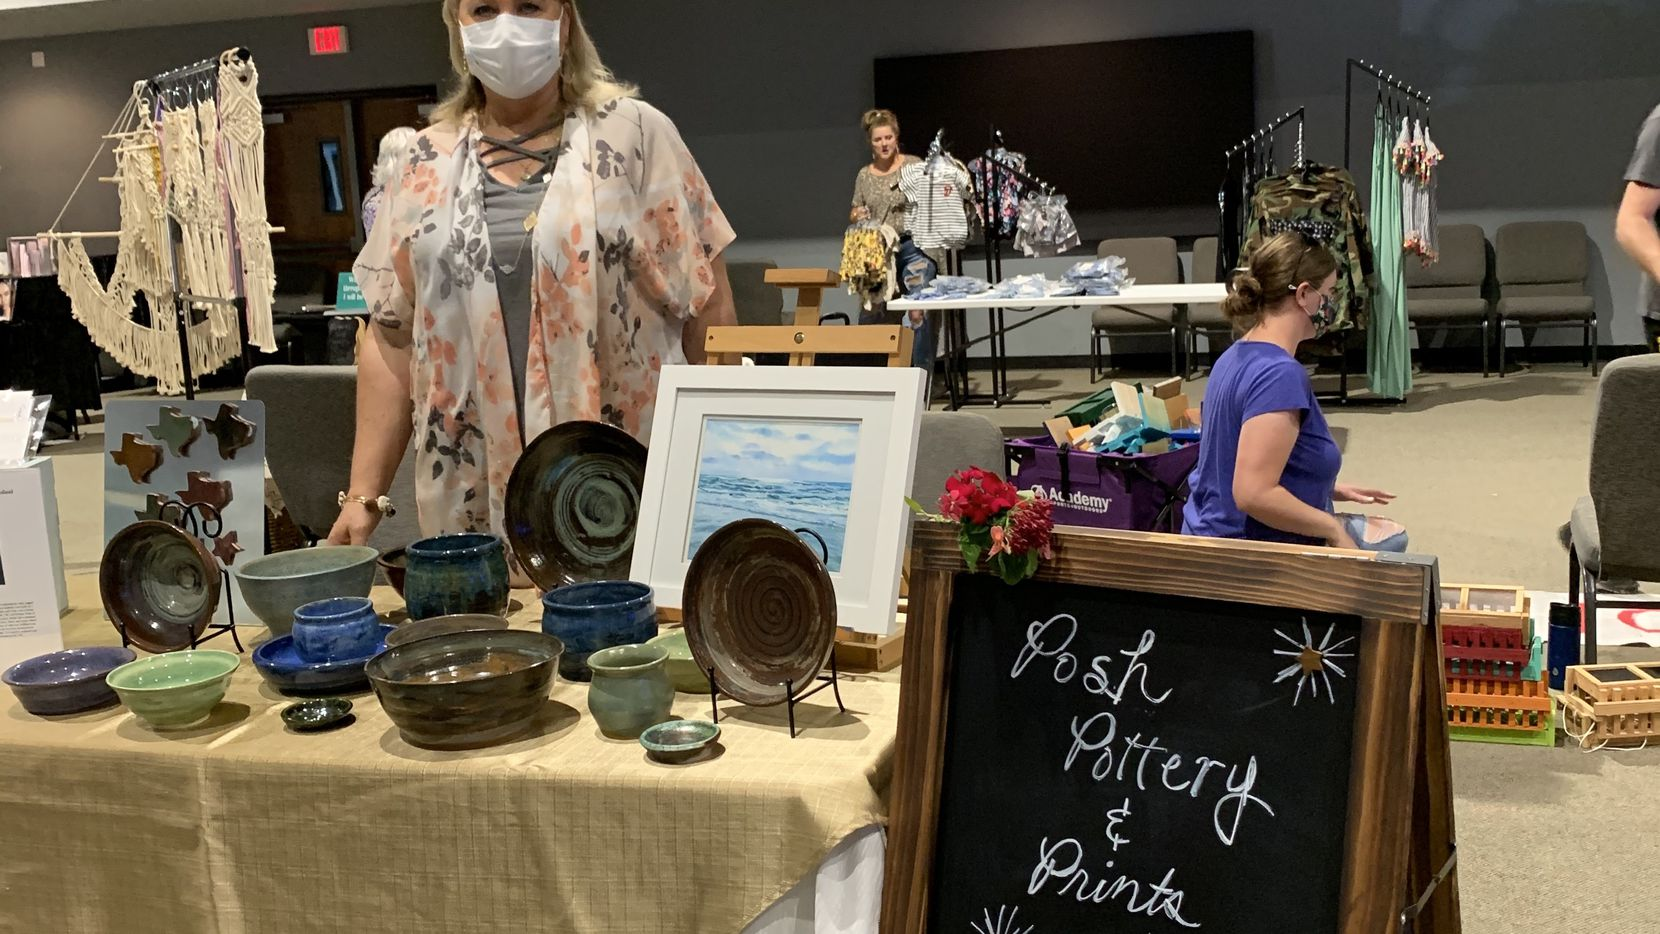 Gwen Cantu is pictured behind one of the booths at the first Tidbits & Treasures event in Colleyville at Journey Church, July 11, 2020.